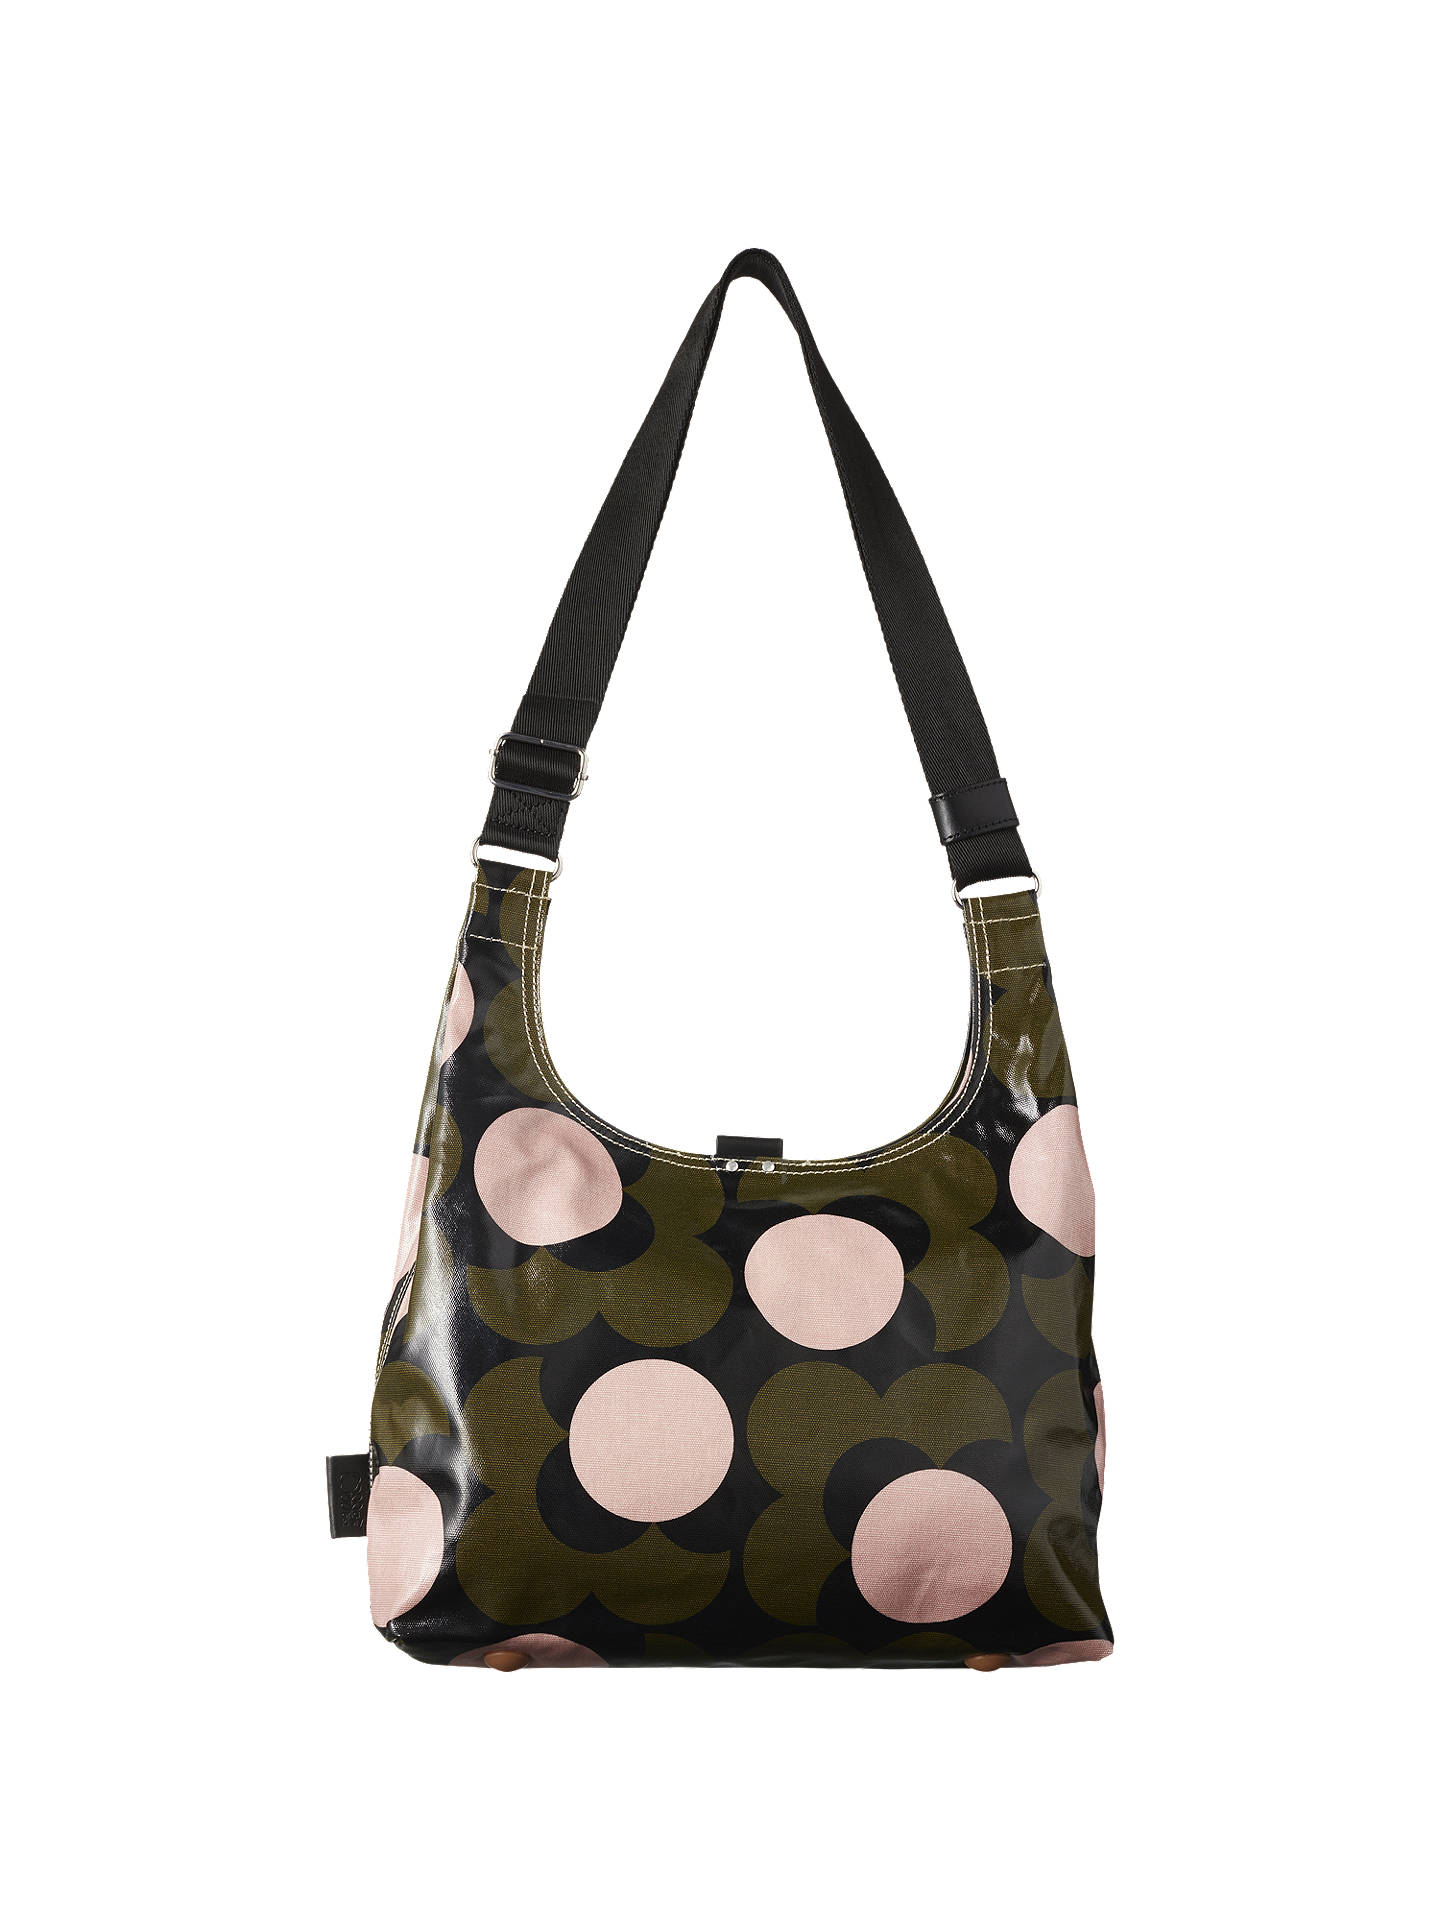 BuyOrla Kiely Shiny Laminated Shadow Flower Print Shoulder Bag 0695e99ae4b1a